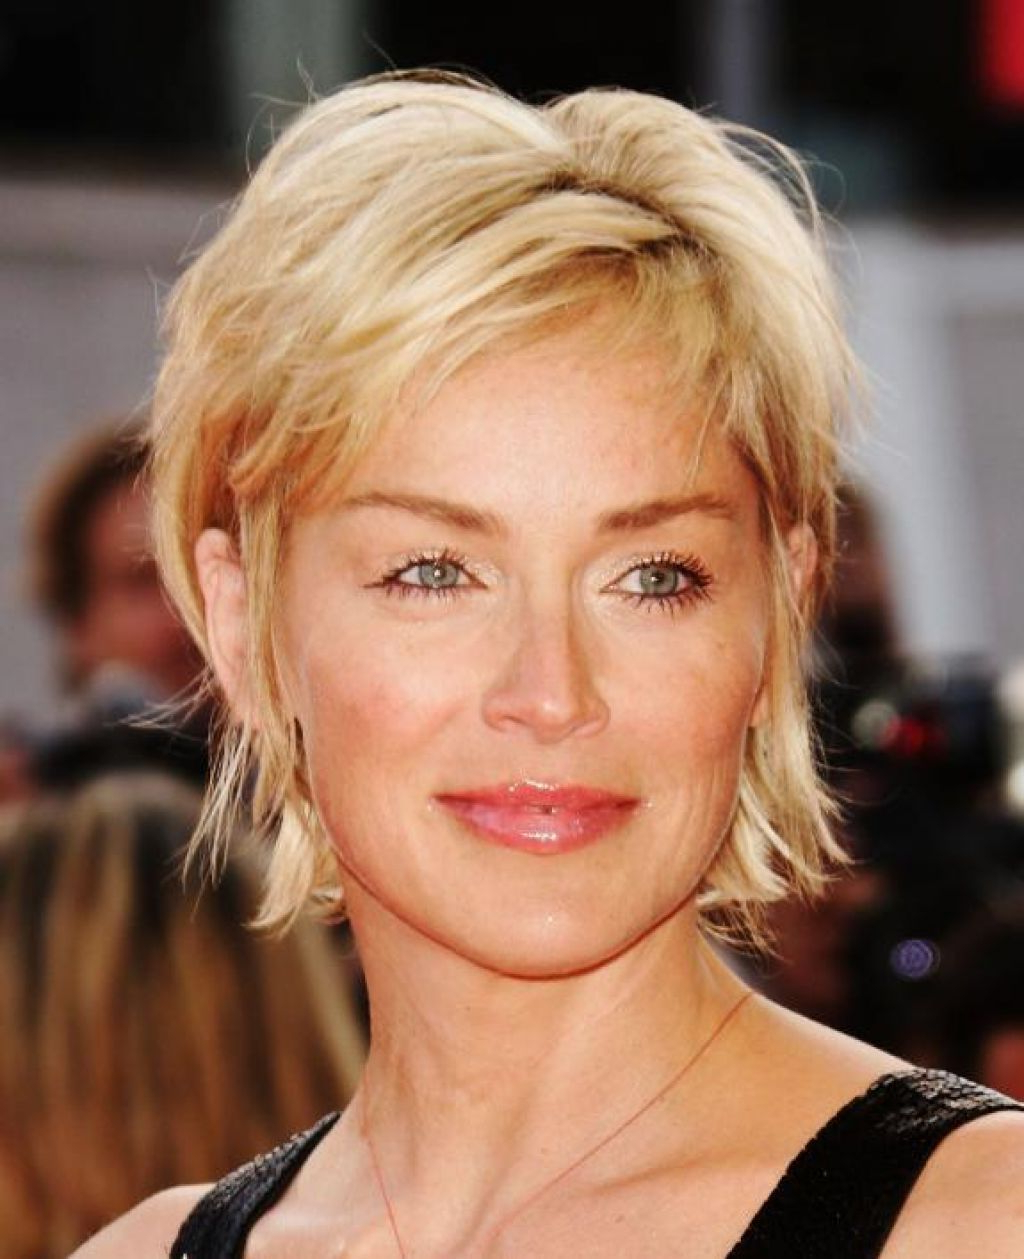 Image Result For Medium Length Hairstyles For 50 Year Old Women Intended For Short Hairstyle For 50 Year Old Woman (View 5 of 25)